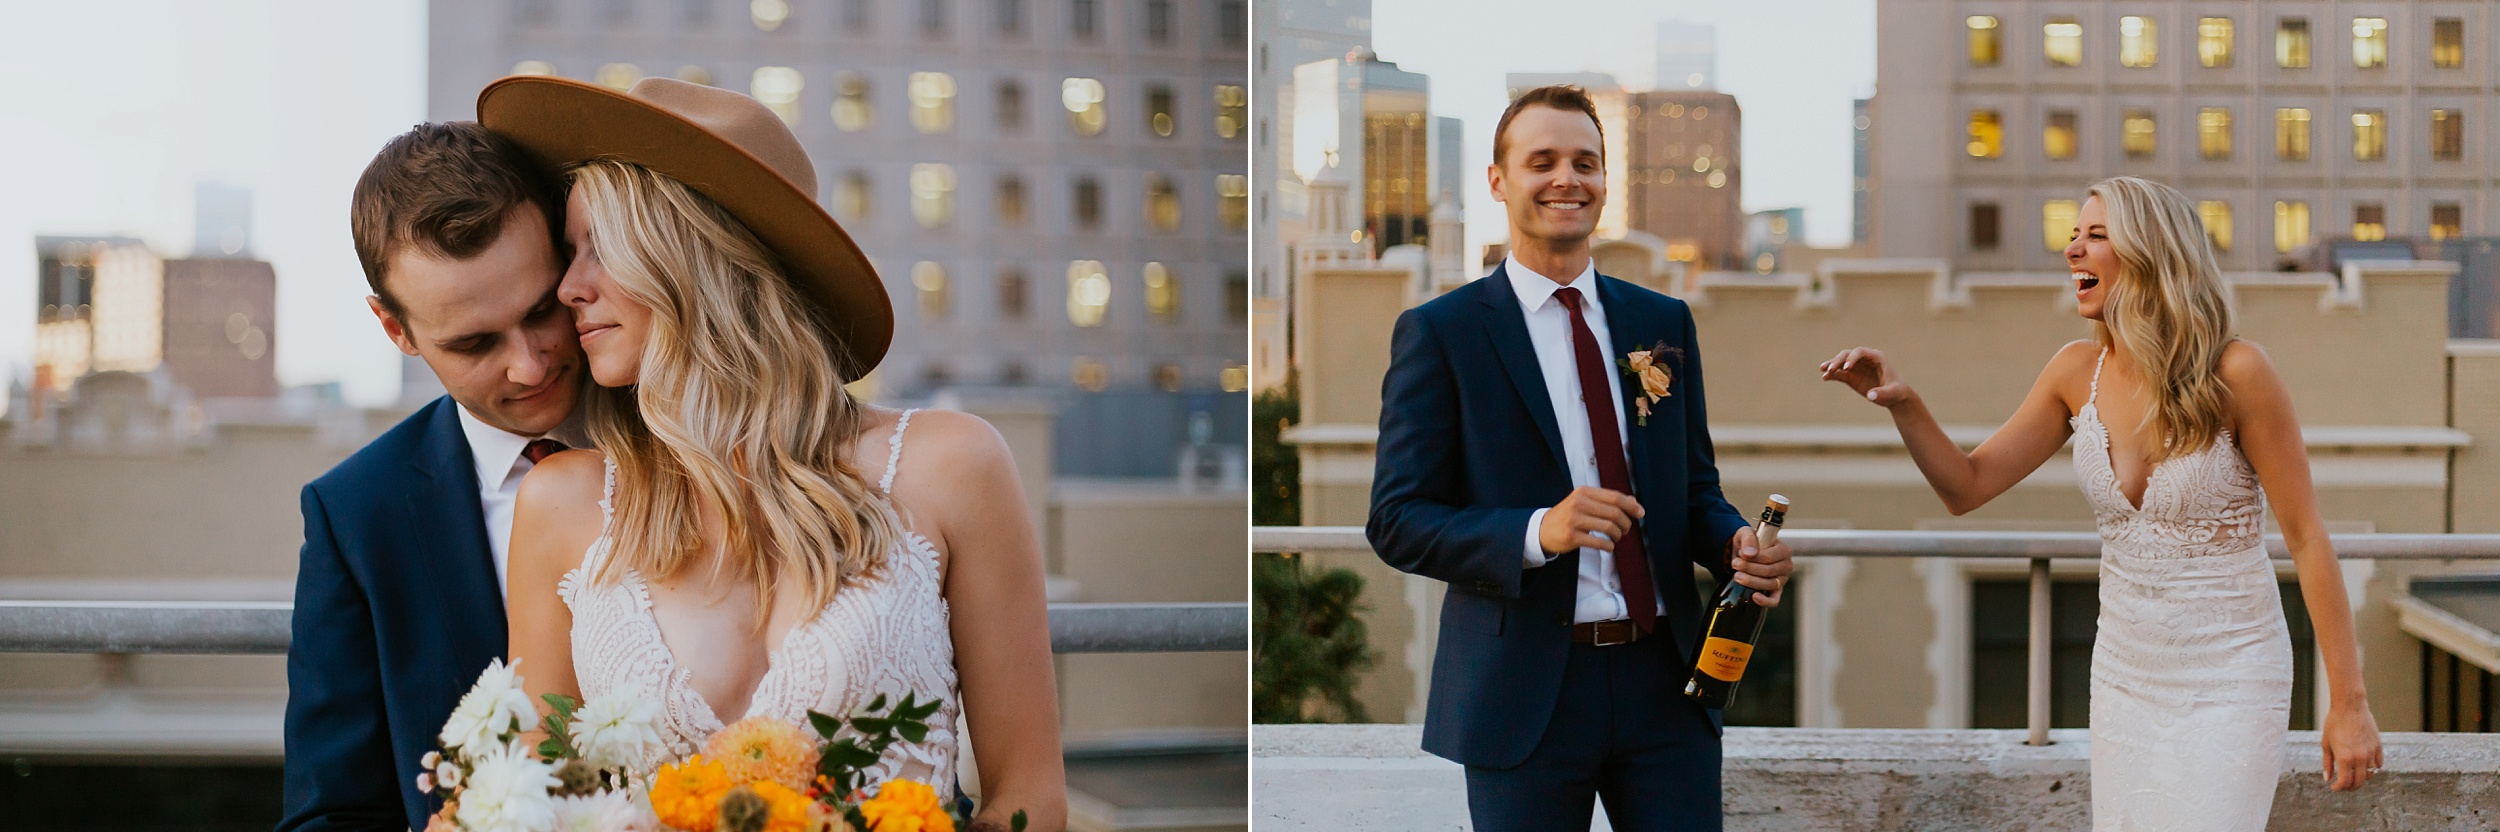 DowntownDenver_Colorado_Elopement_Anniversary_Session_Urban_Edit-44.jpg